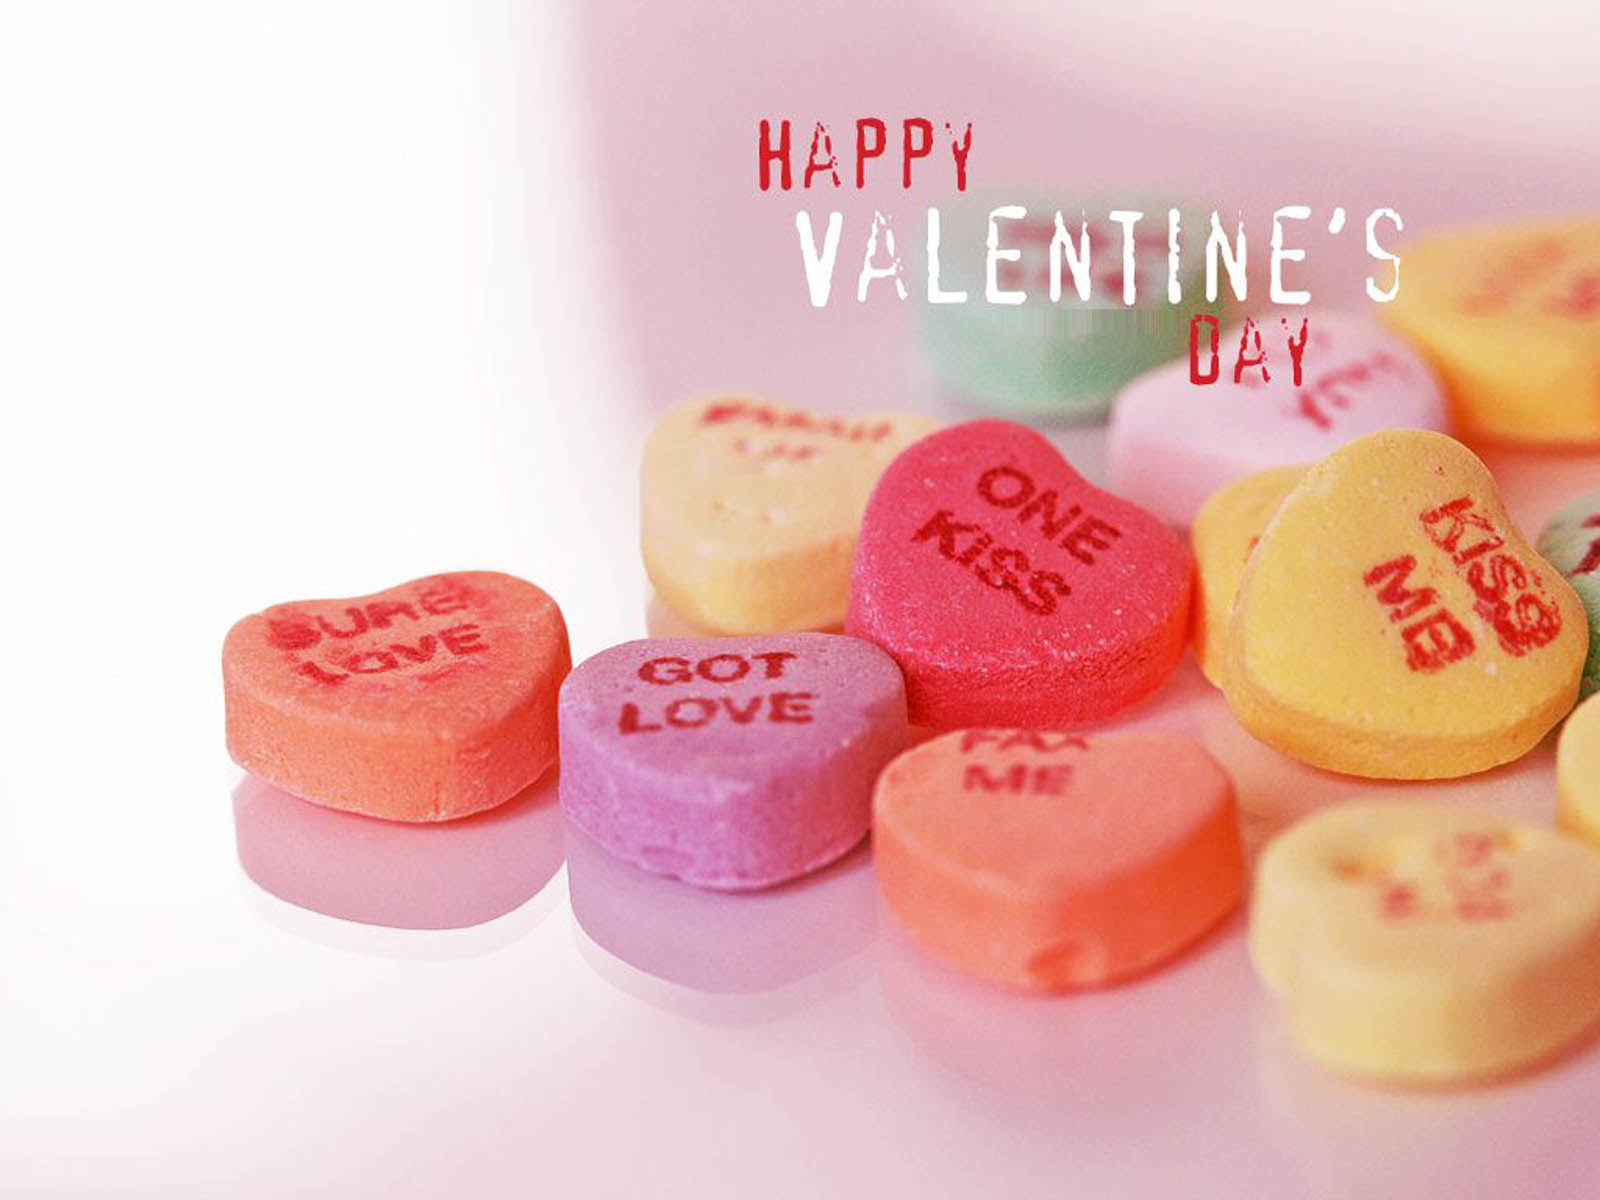 tag valentines day desktop wallpapers backgrounds photos images and 1600x1200